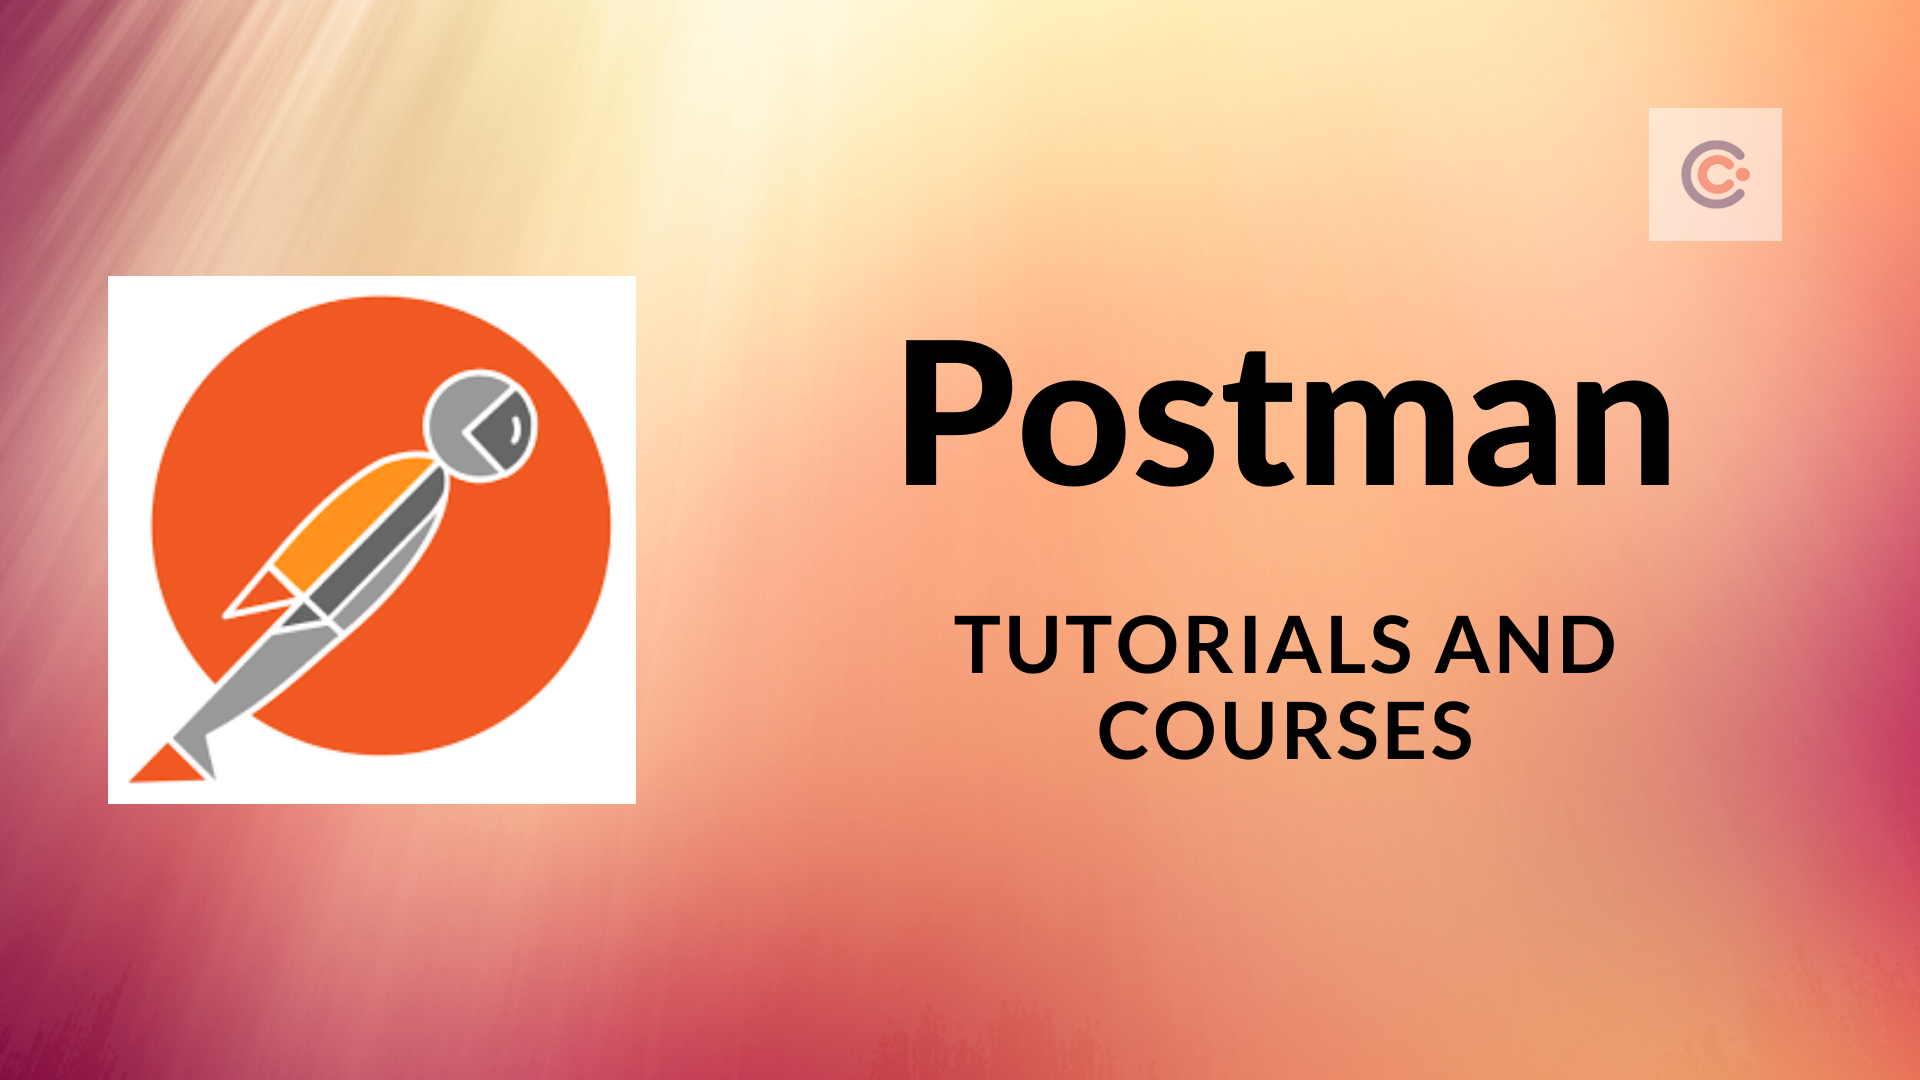 10 Best Postman Tutorials and Courses - Learn Postman Online